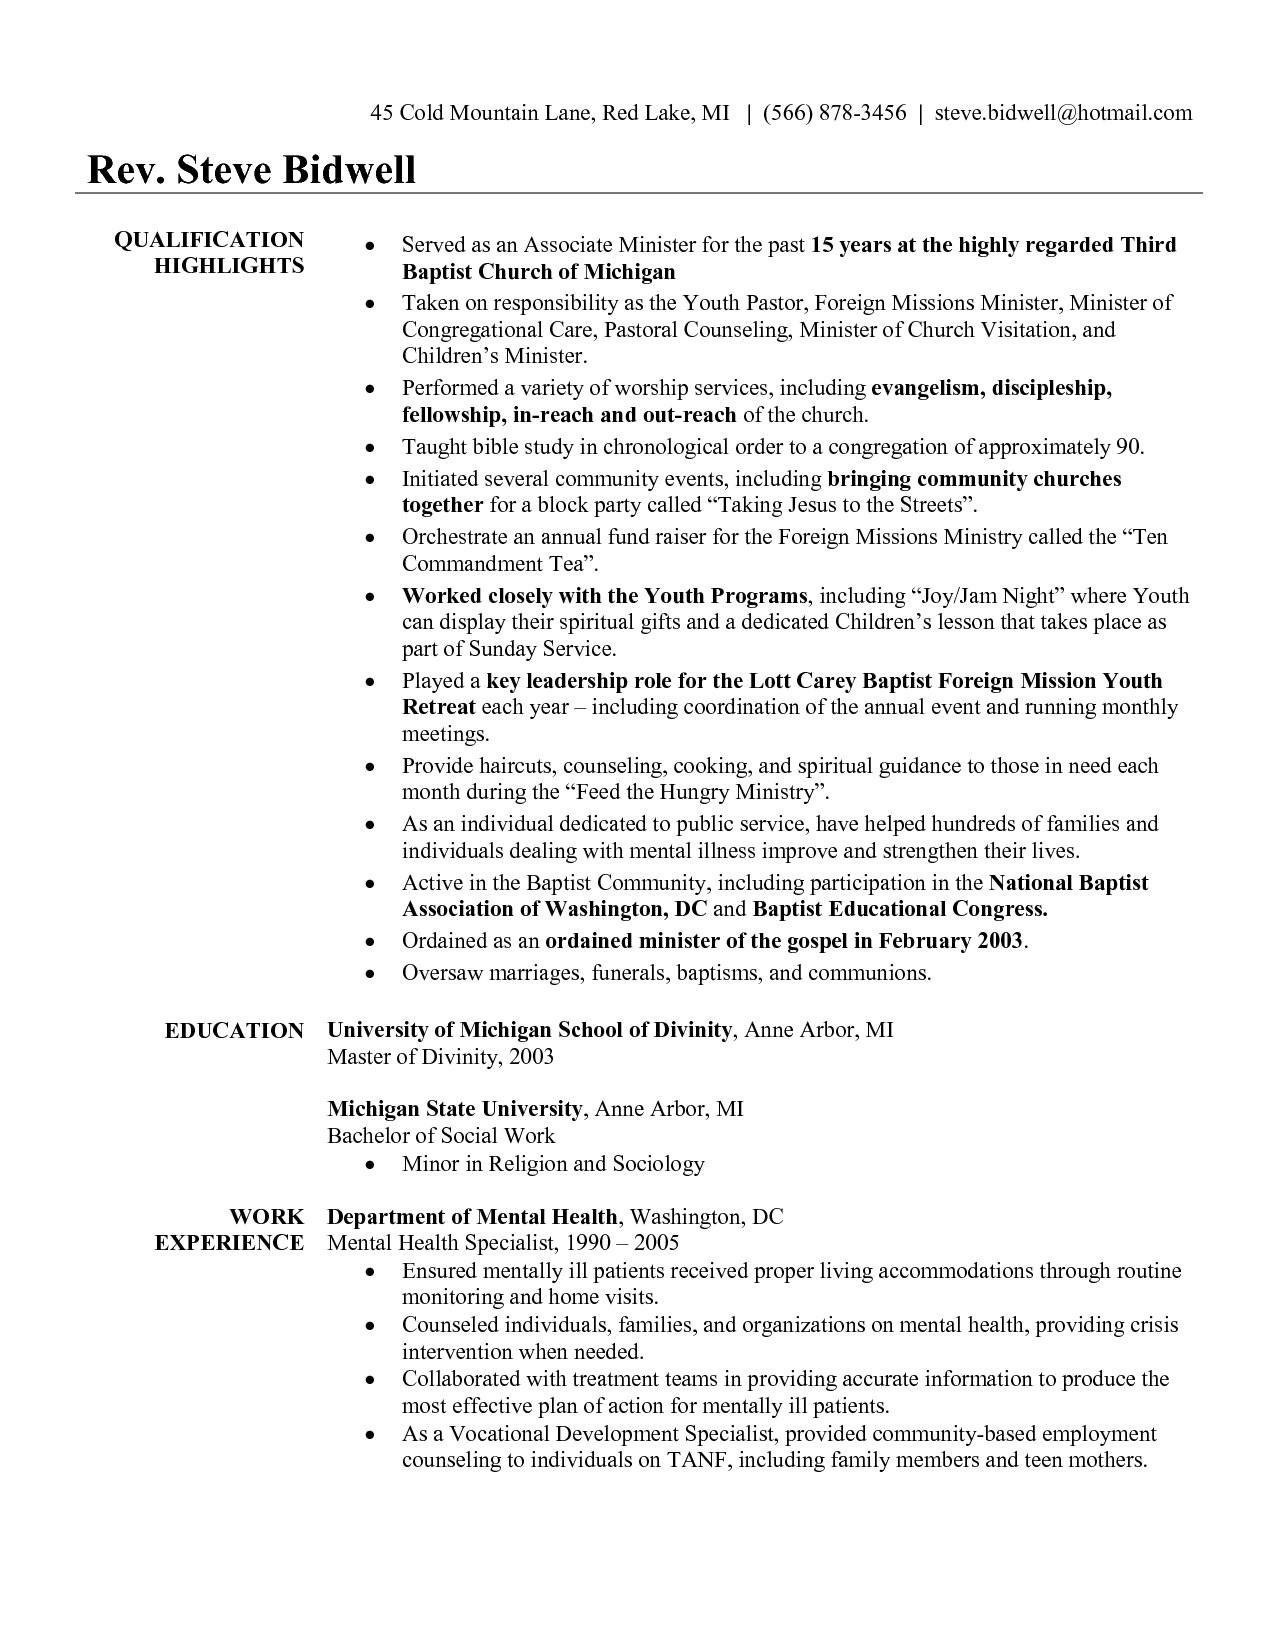 youth pastor resume template example-Youth Pastor Resume Awesome Pastor Resume Template Free Unique Qlikview Resume Sample Luxury Od Youth 12-c